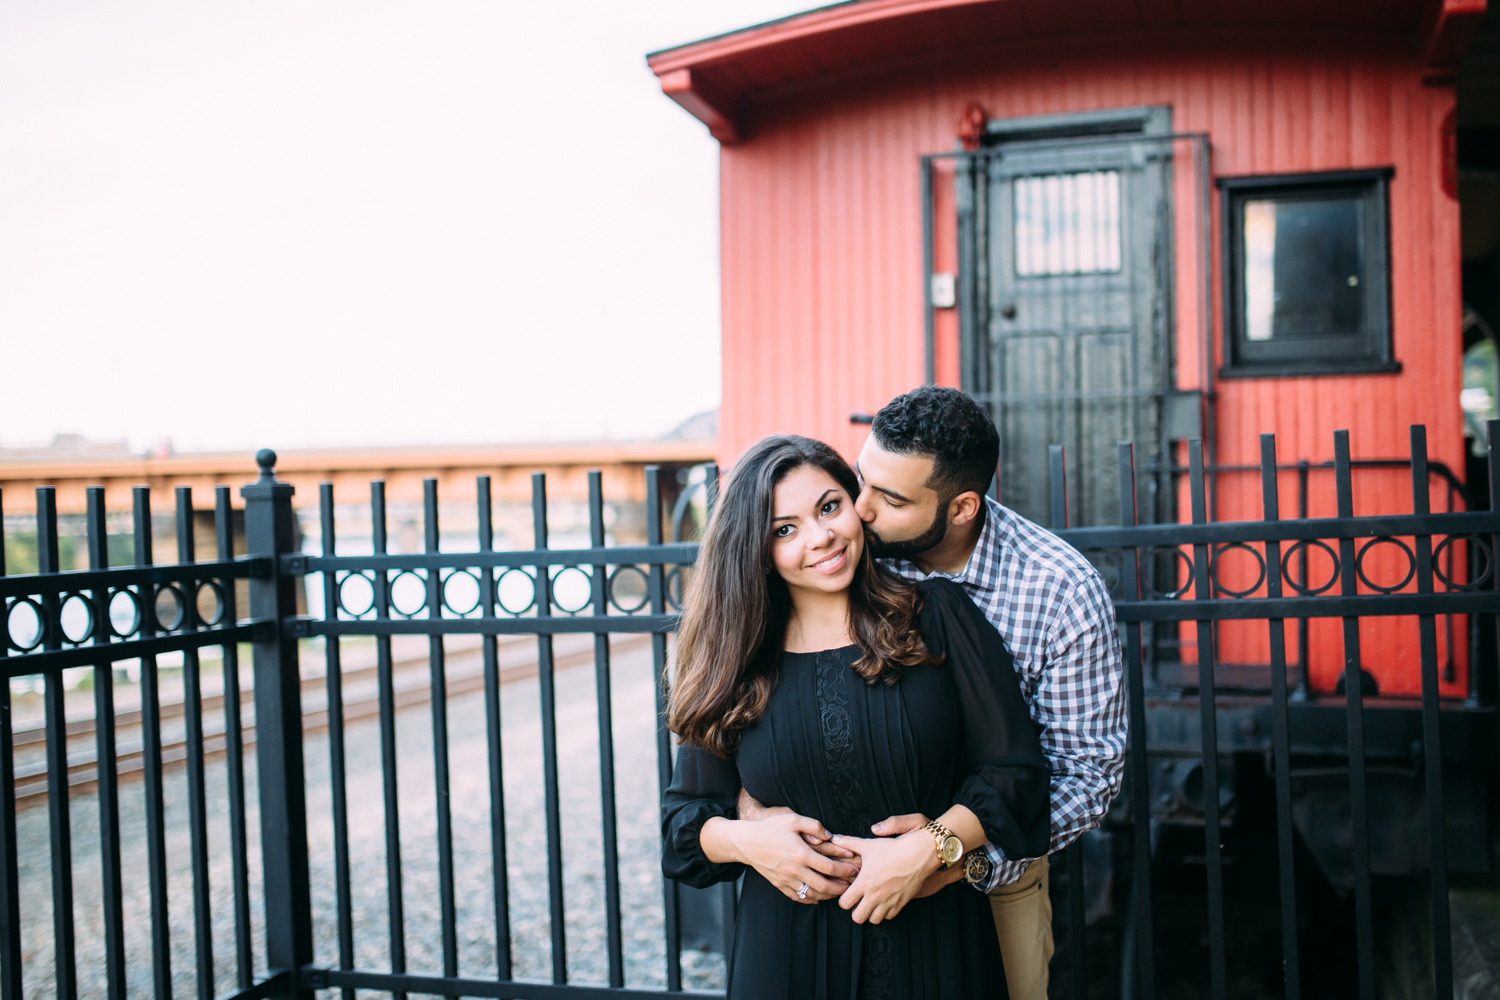 Ashley-reed-photography-pittsburgh-engagement-engagementphotography-engagementphotographer-stationsquare-statio-square-pittsburghengagementphotography-15.jpg